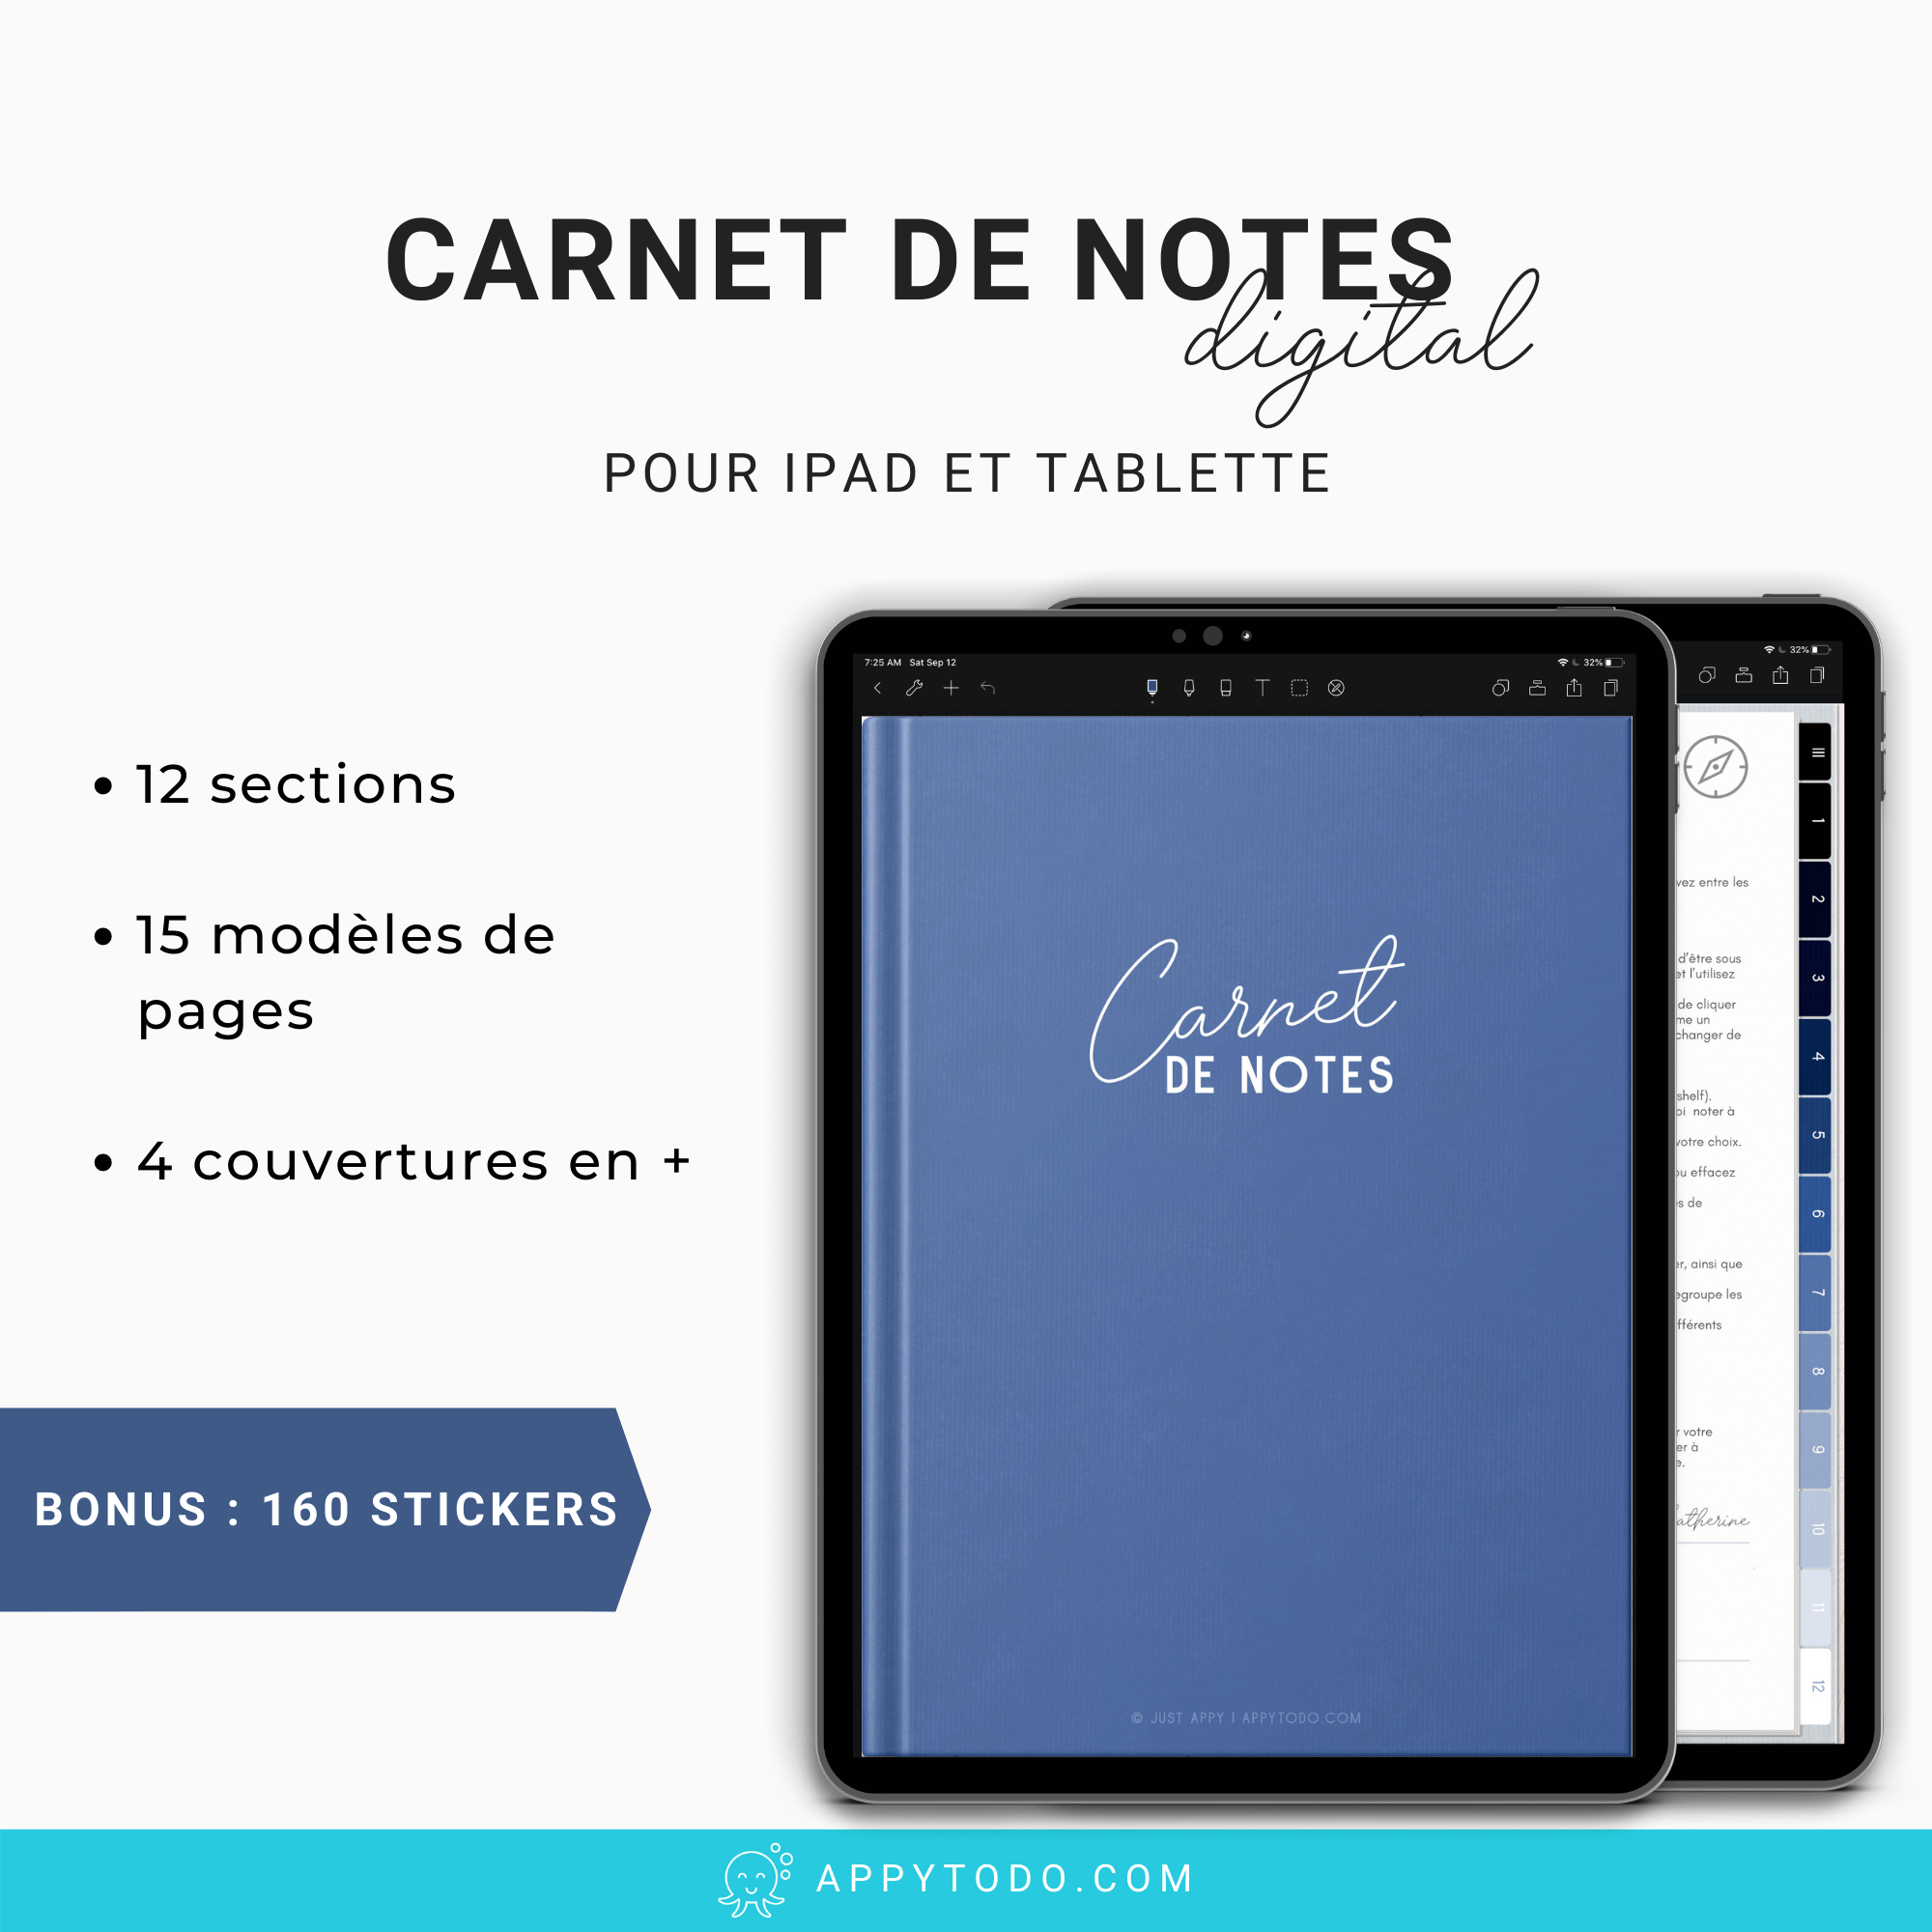 Carnet de notes digital 12 sections Bleu pour Ipad et Tablette